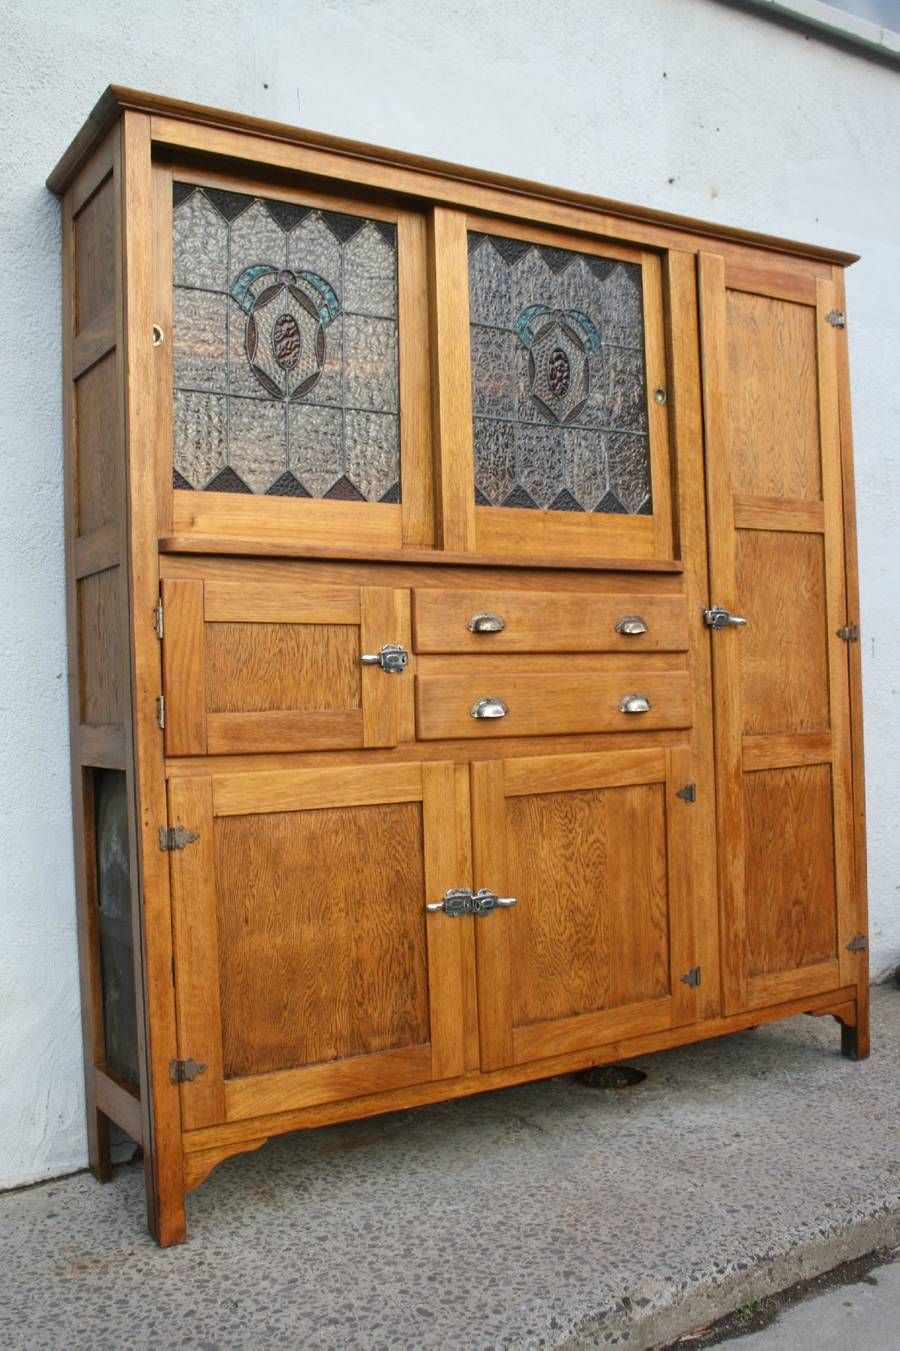 Antique Kitchens Antique Restored Leadlight Cupboard Cabinet Kitchen Dresser